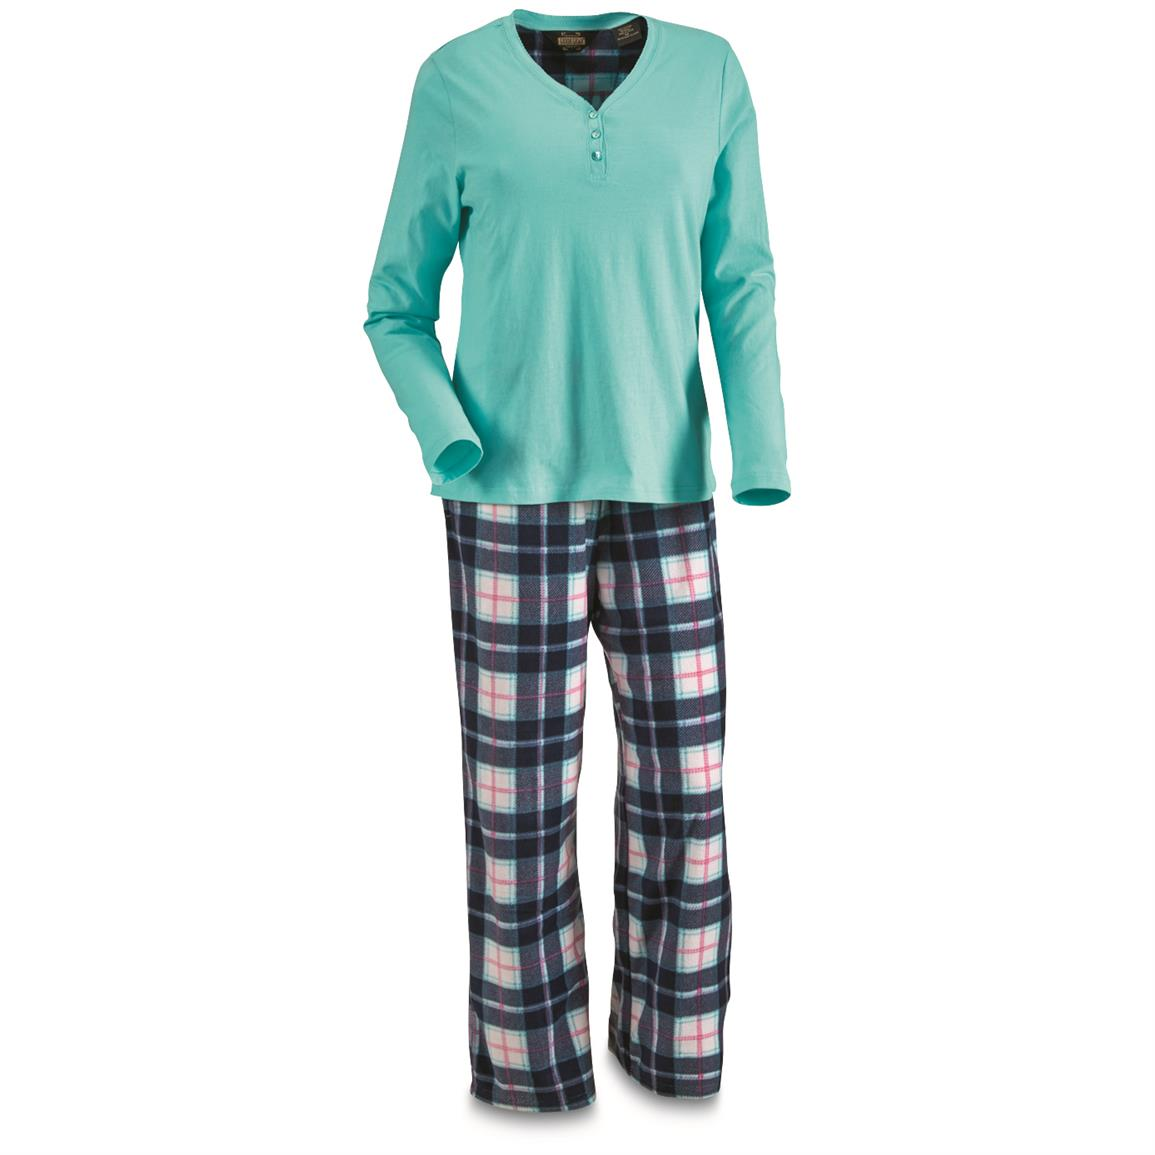 Guide Gear Women's Plaid Pajama Set, Blue Plaid